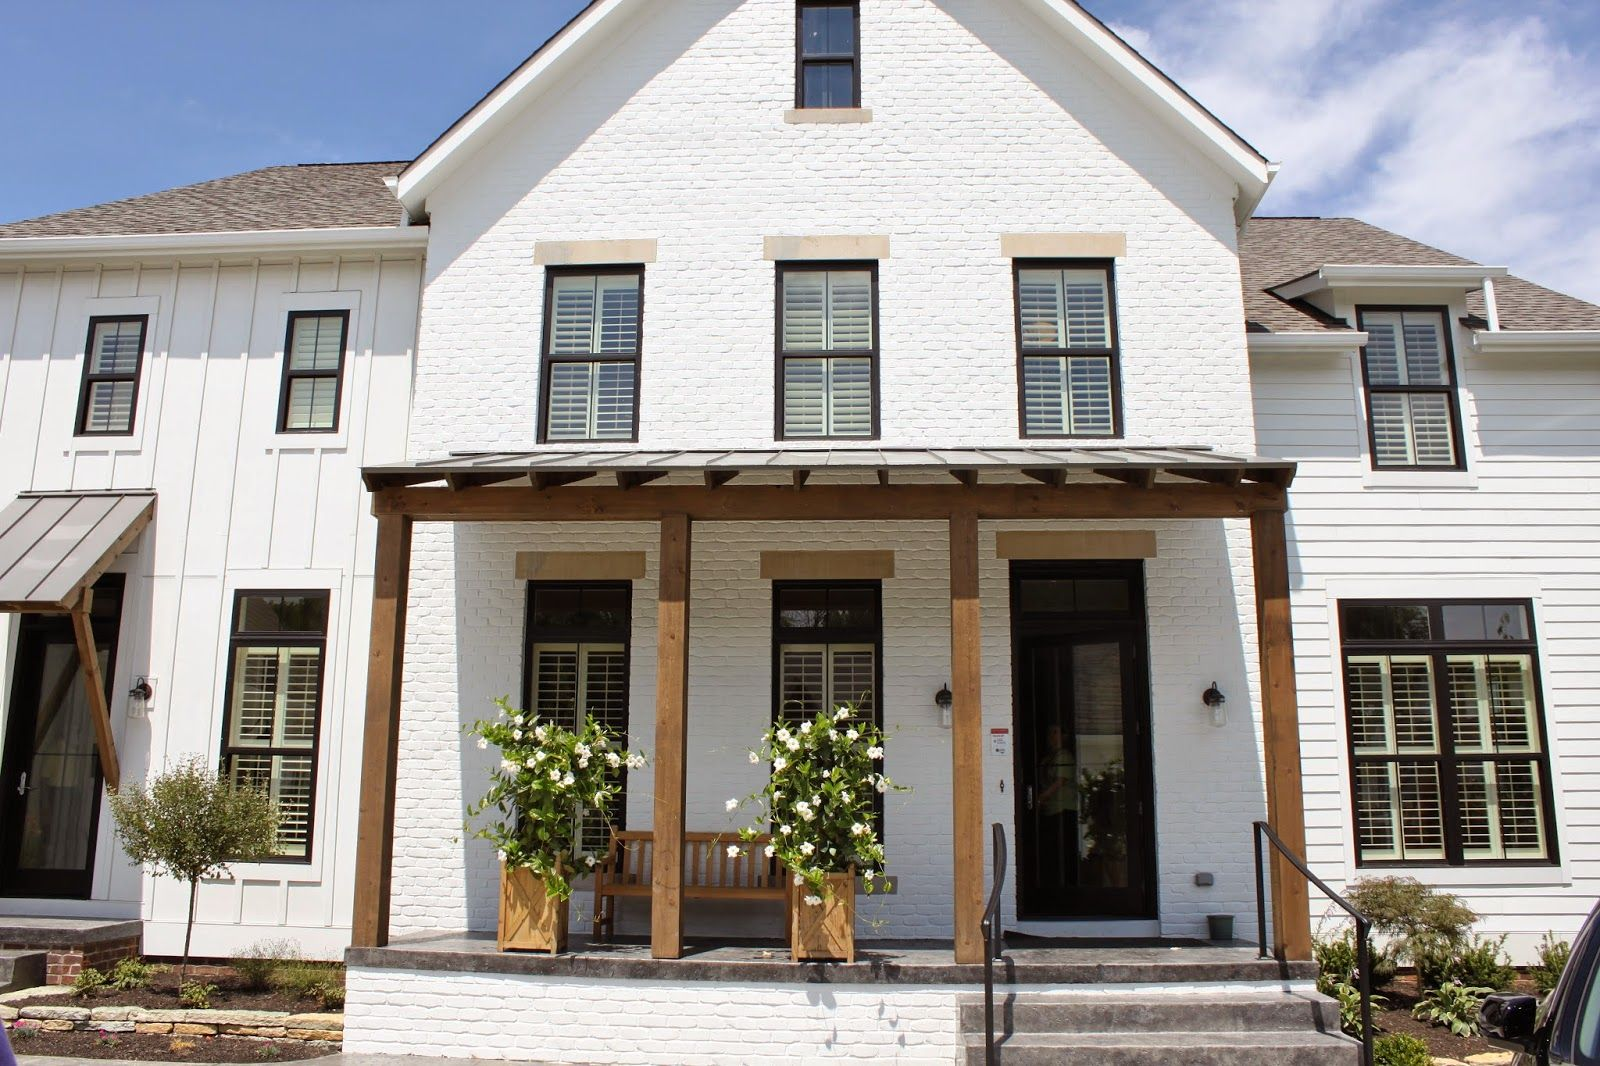 The fat hydrangea parade of homes week 2014 house 3 for Industrial farmhouse exterior